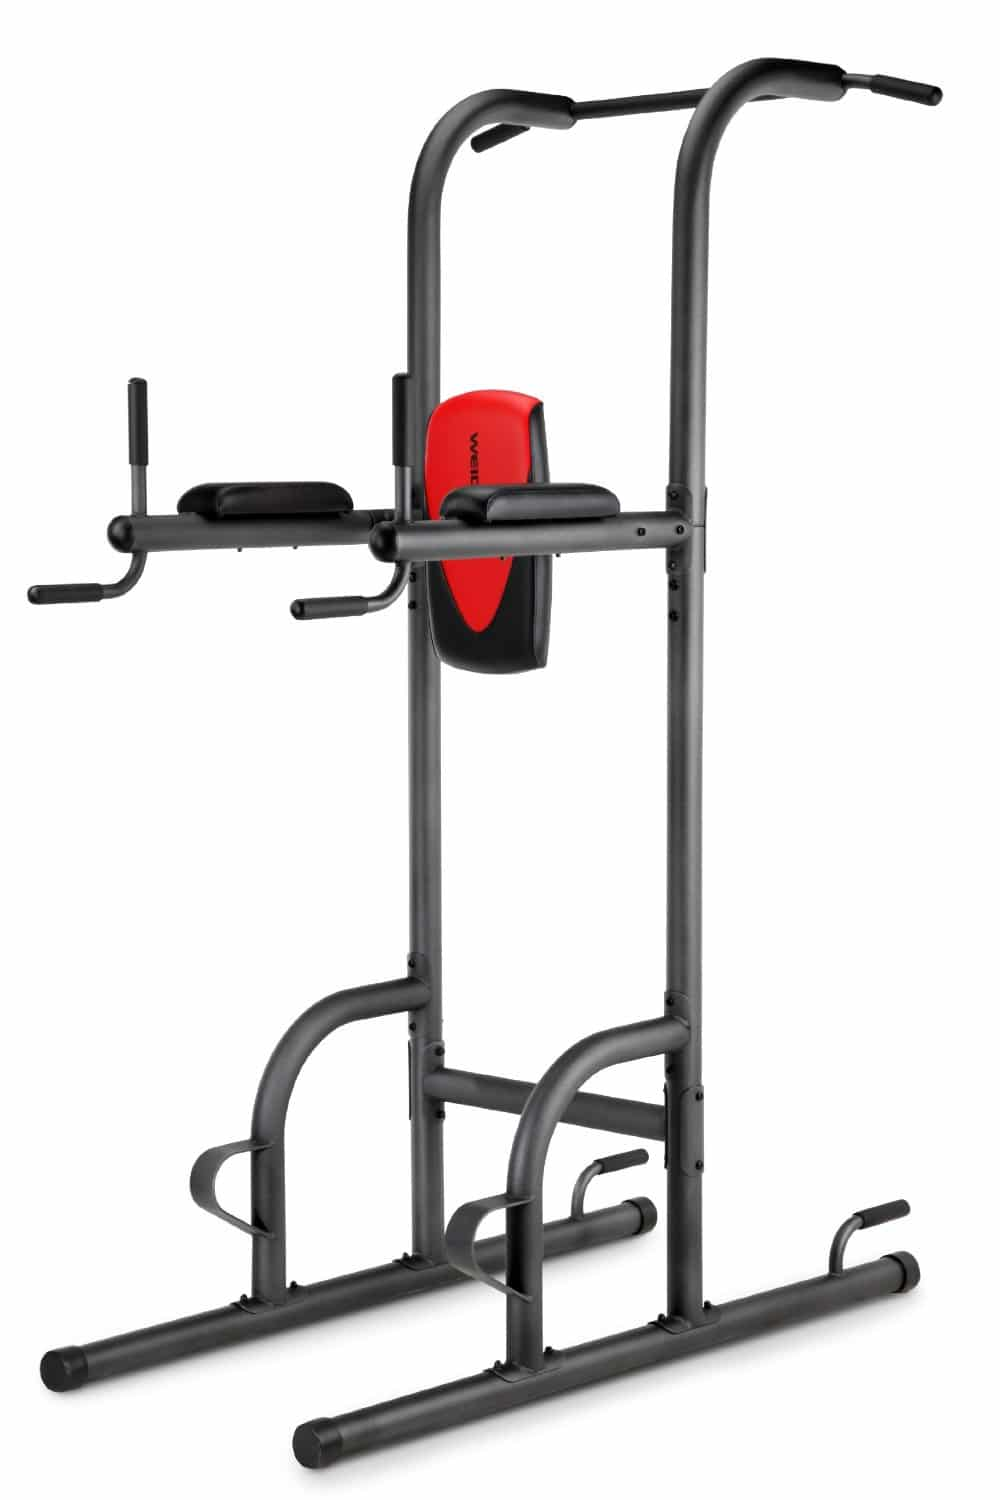 Weider Power Tower Review - The Secret of Weider Power Tower